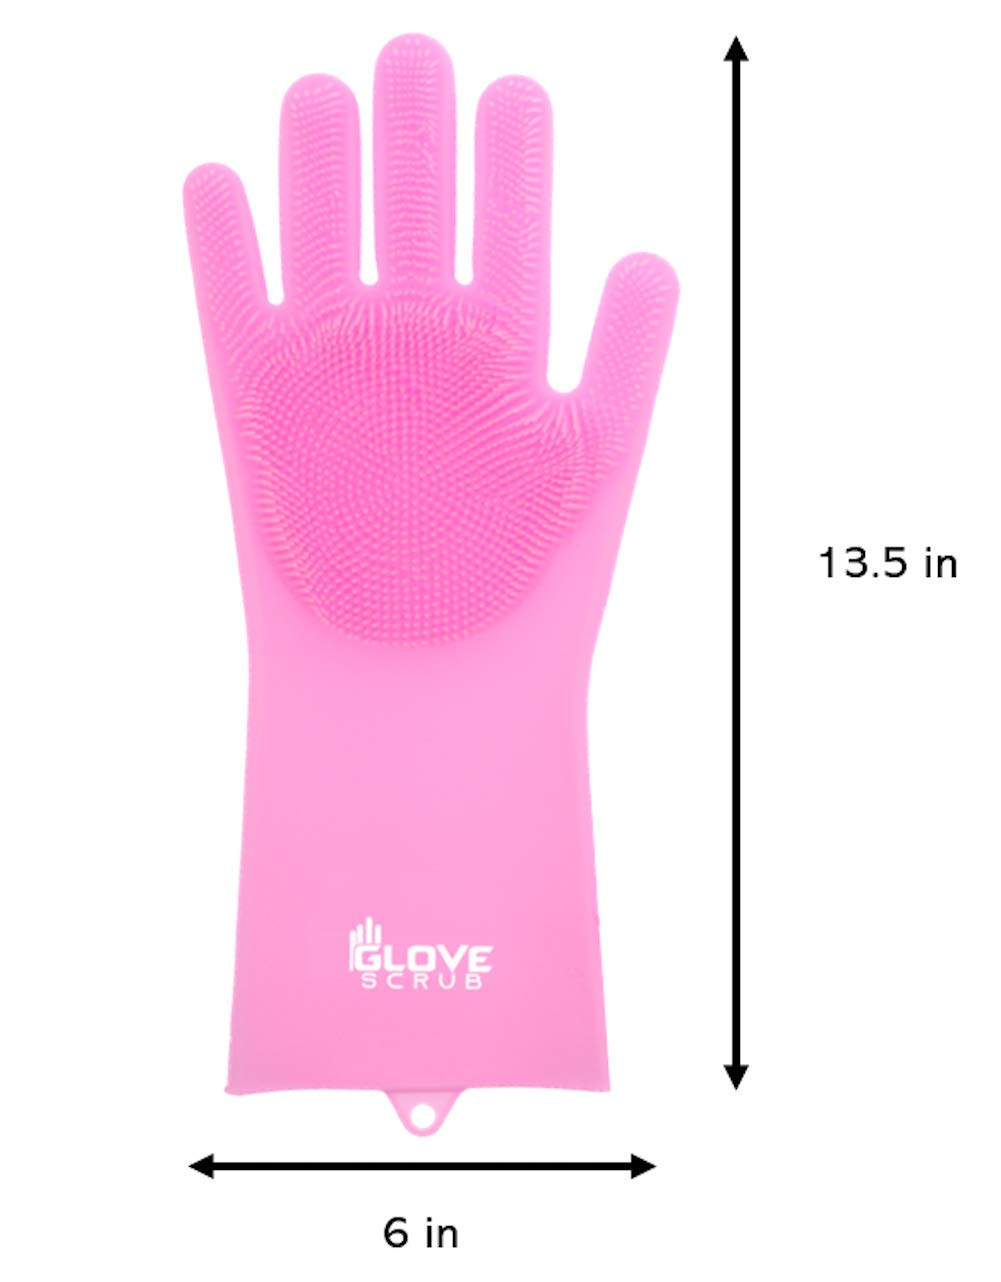 Glove Scrub Pet Durable Bathroom Cleaning Heat Resistant Blue Magic Silicone Scrubbing Pair of Gloves for Dishwashing